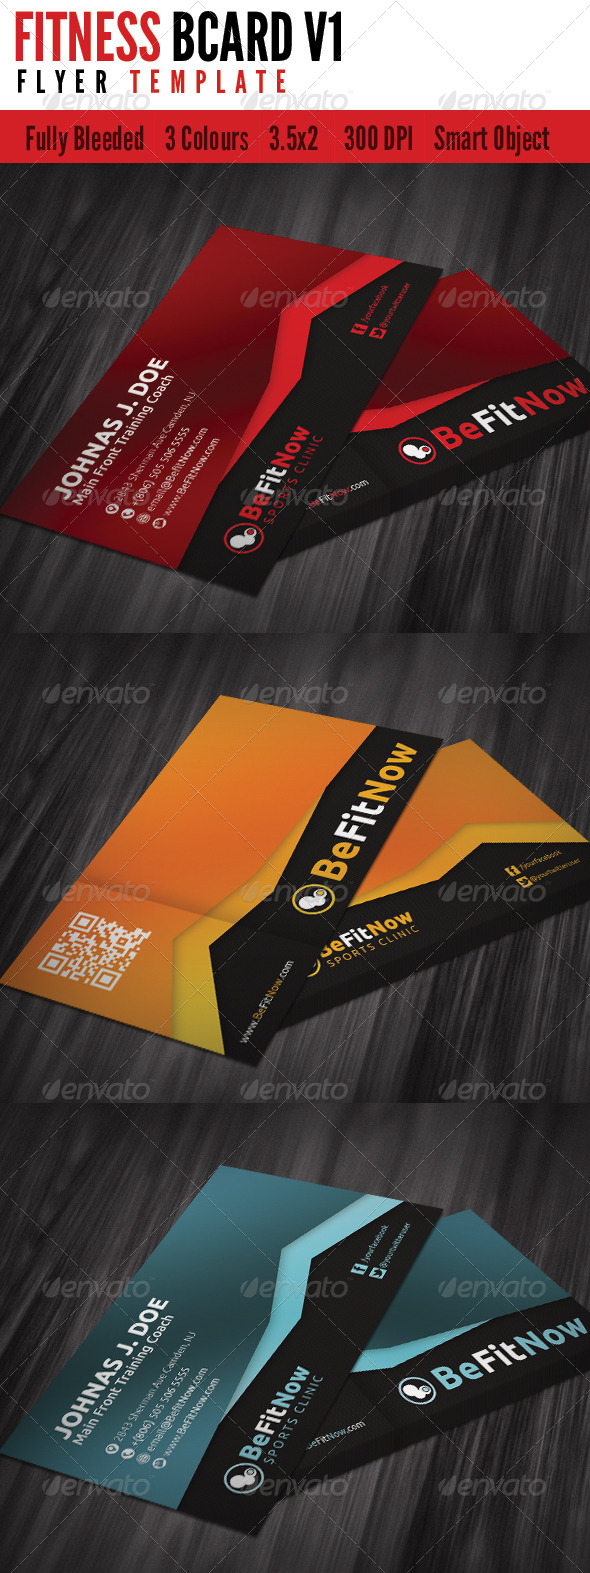 Fitness Business Card V1 - Corporate Business Cards